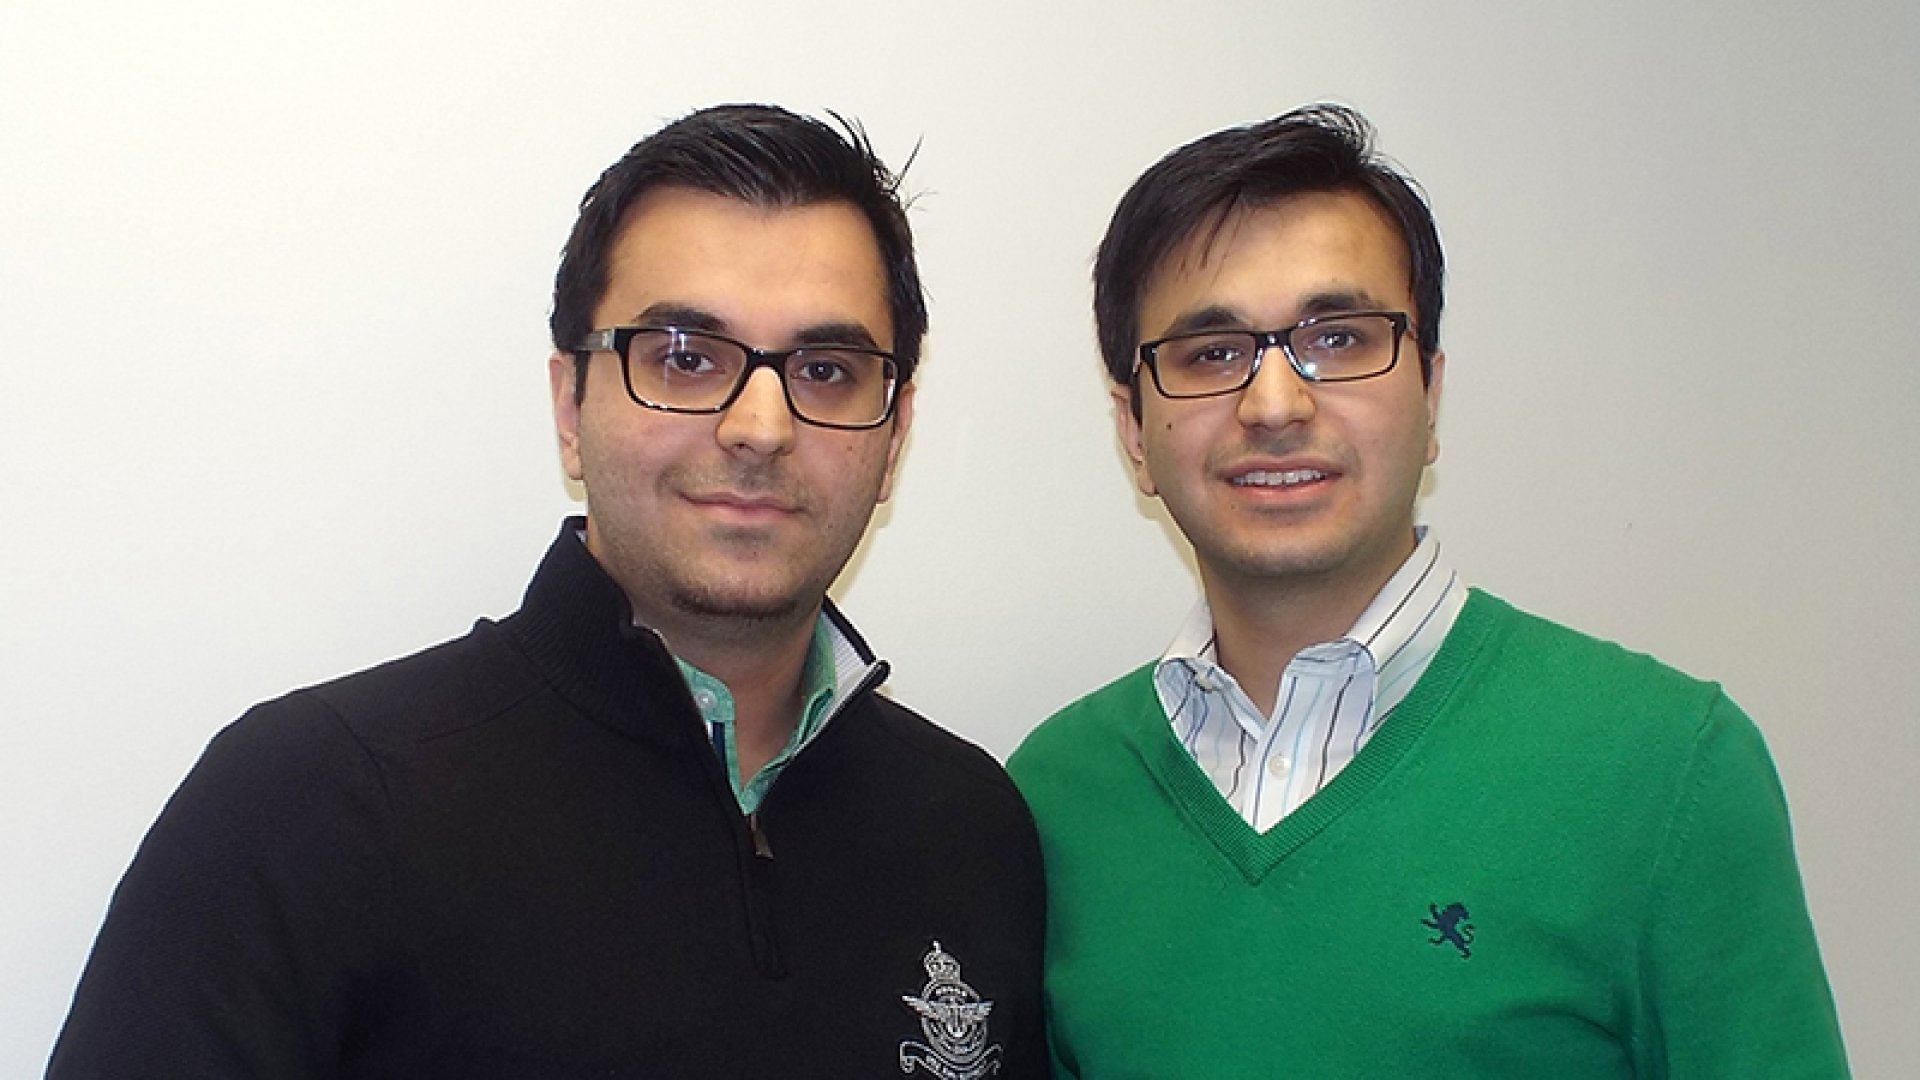 Danny and Dinesh Wadhwani are the co-founders of ThinkLite, which has developed a cost-efficient way for companies to switch to LED lighting.